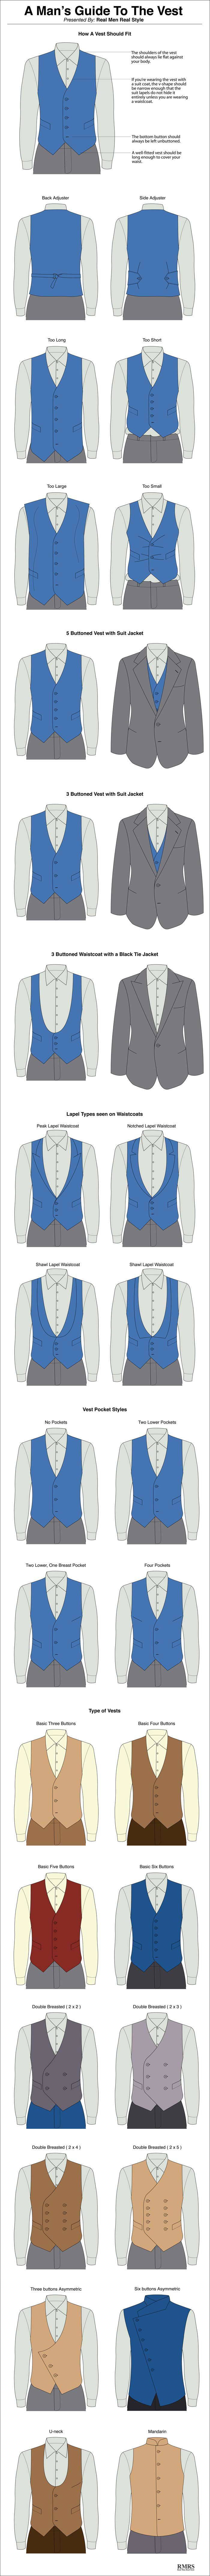 Ultimate Guide To The Waistcoat